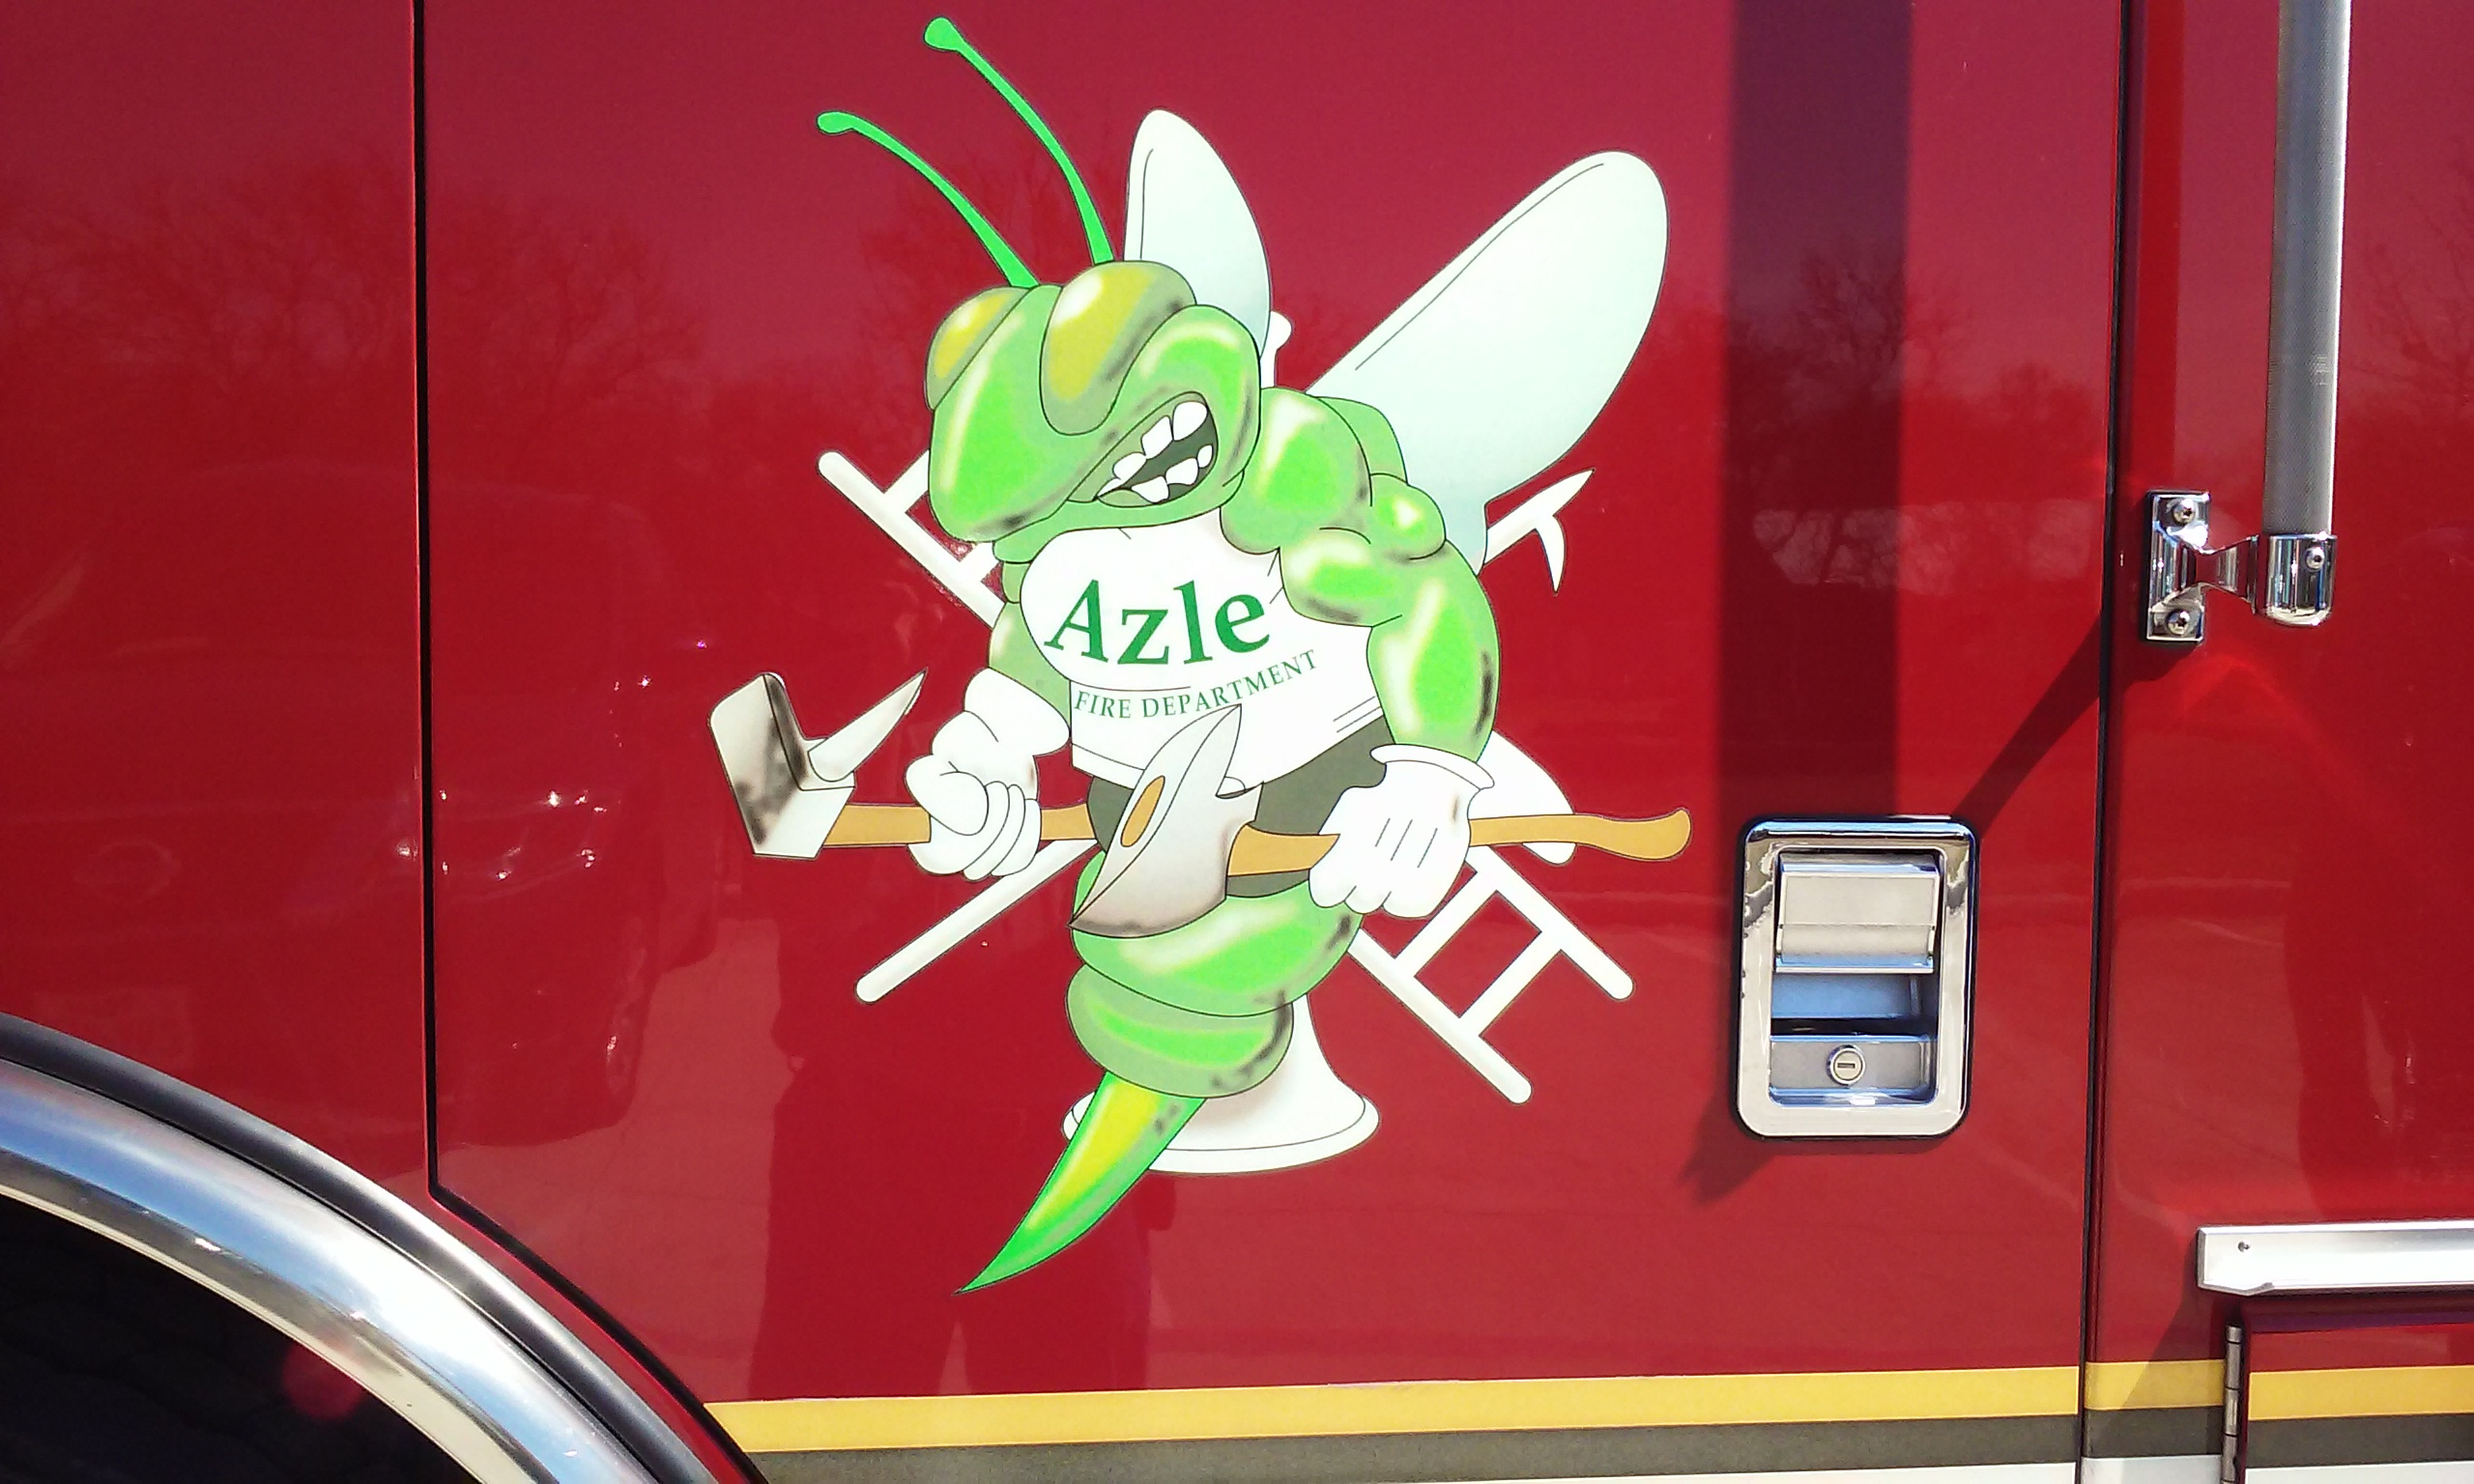 Azle Fire Department Logo - Azle, Texas